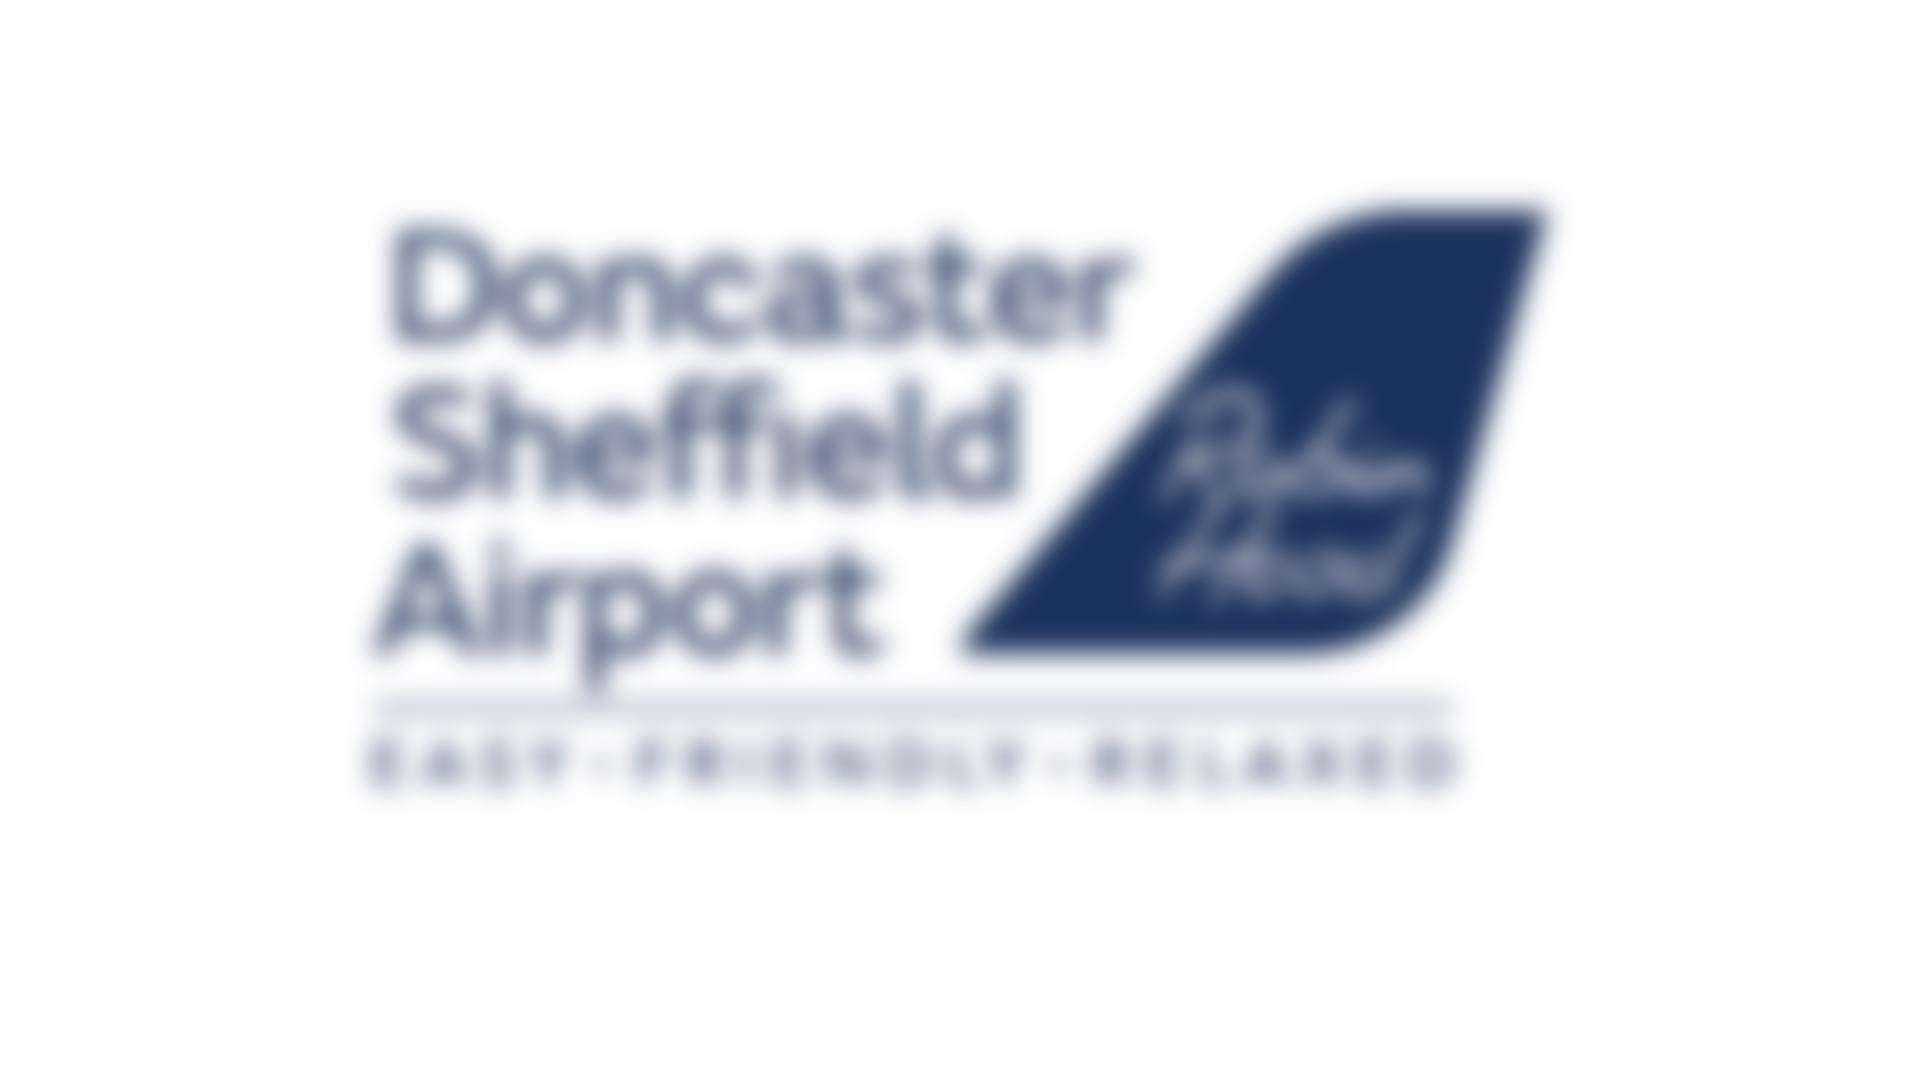 Doncaster Sheffield Airport Reveals Confident New Easy Friendly Relaxed Brand